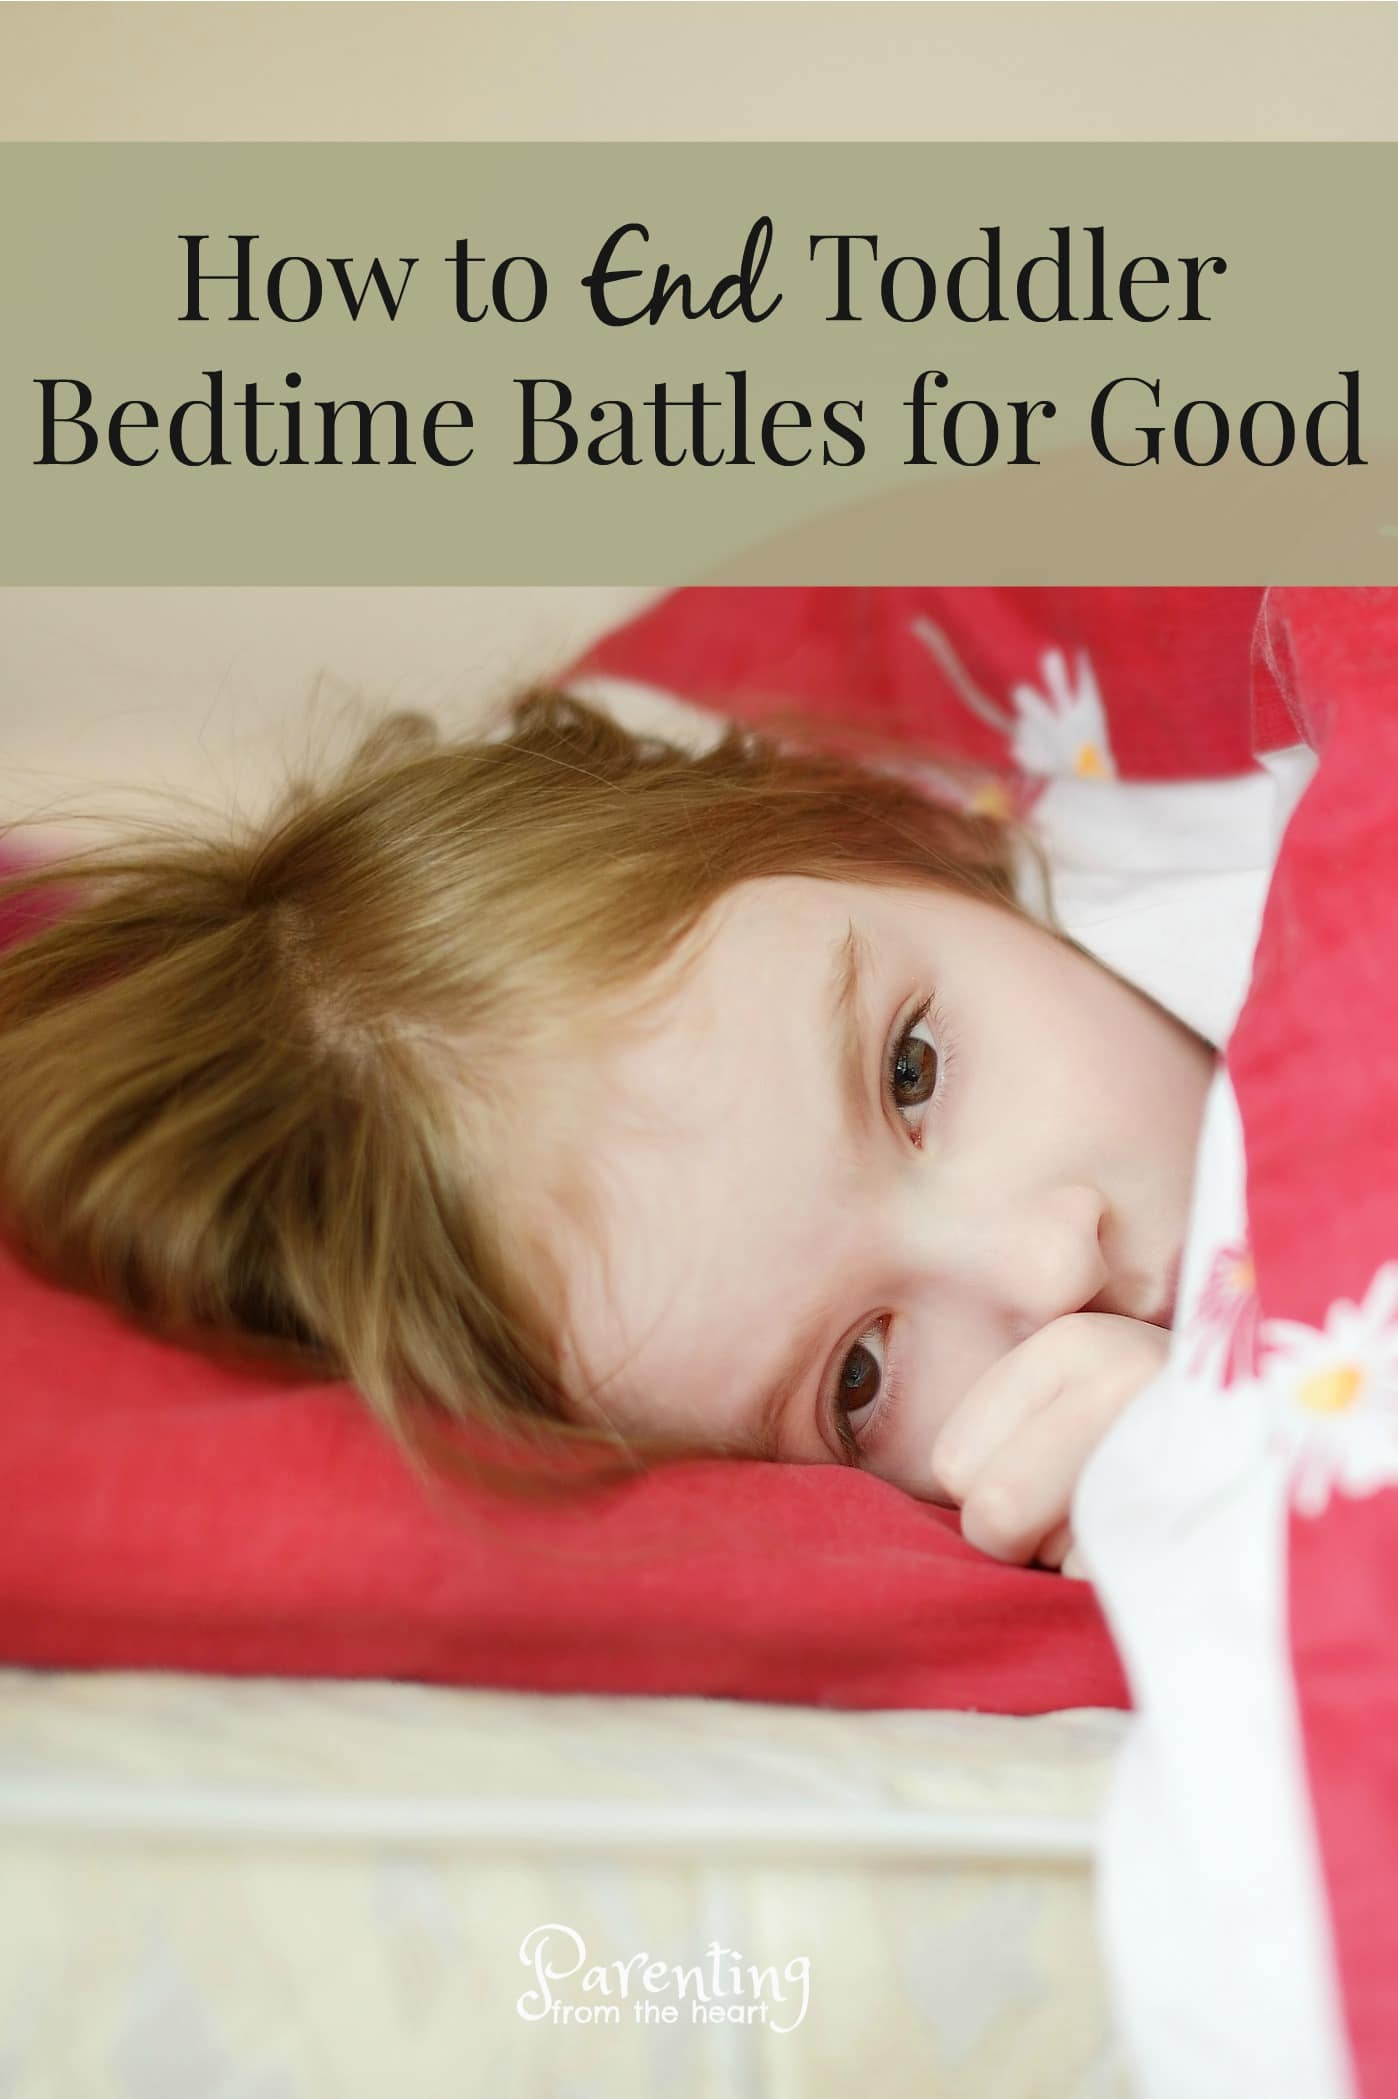 Toddler bedtime can go from bad-to-worse. All it takes is a slight change in routine, excitement, or distraction on the parents part and bedtime can turn into an extended battle. Today, I'm sharing my tips on Dr Orlena Kerek's blog on how to end toddler bedtime battles. These strategies are rooted in positive parenting. These parenting tips for toddlers also apply to older children too. #parentingtoddlers #toddlers #parenting #bedtime #babysleep #parentingfromtheheart